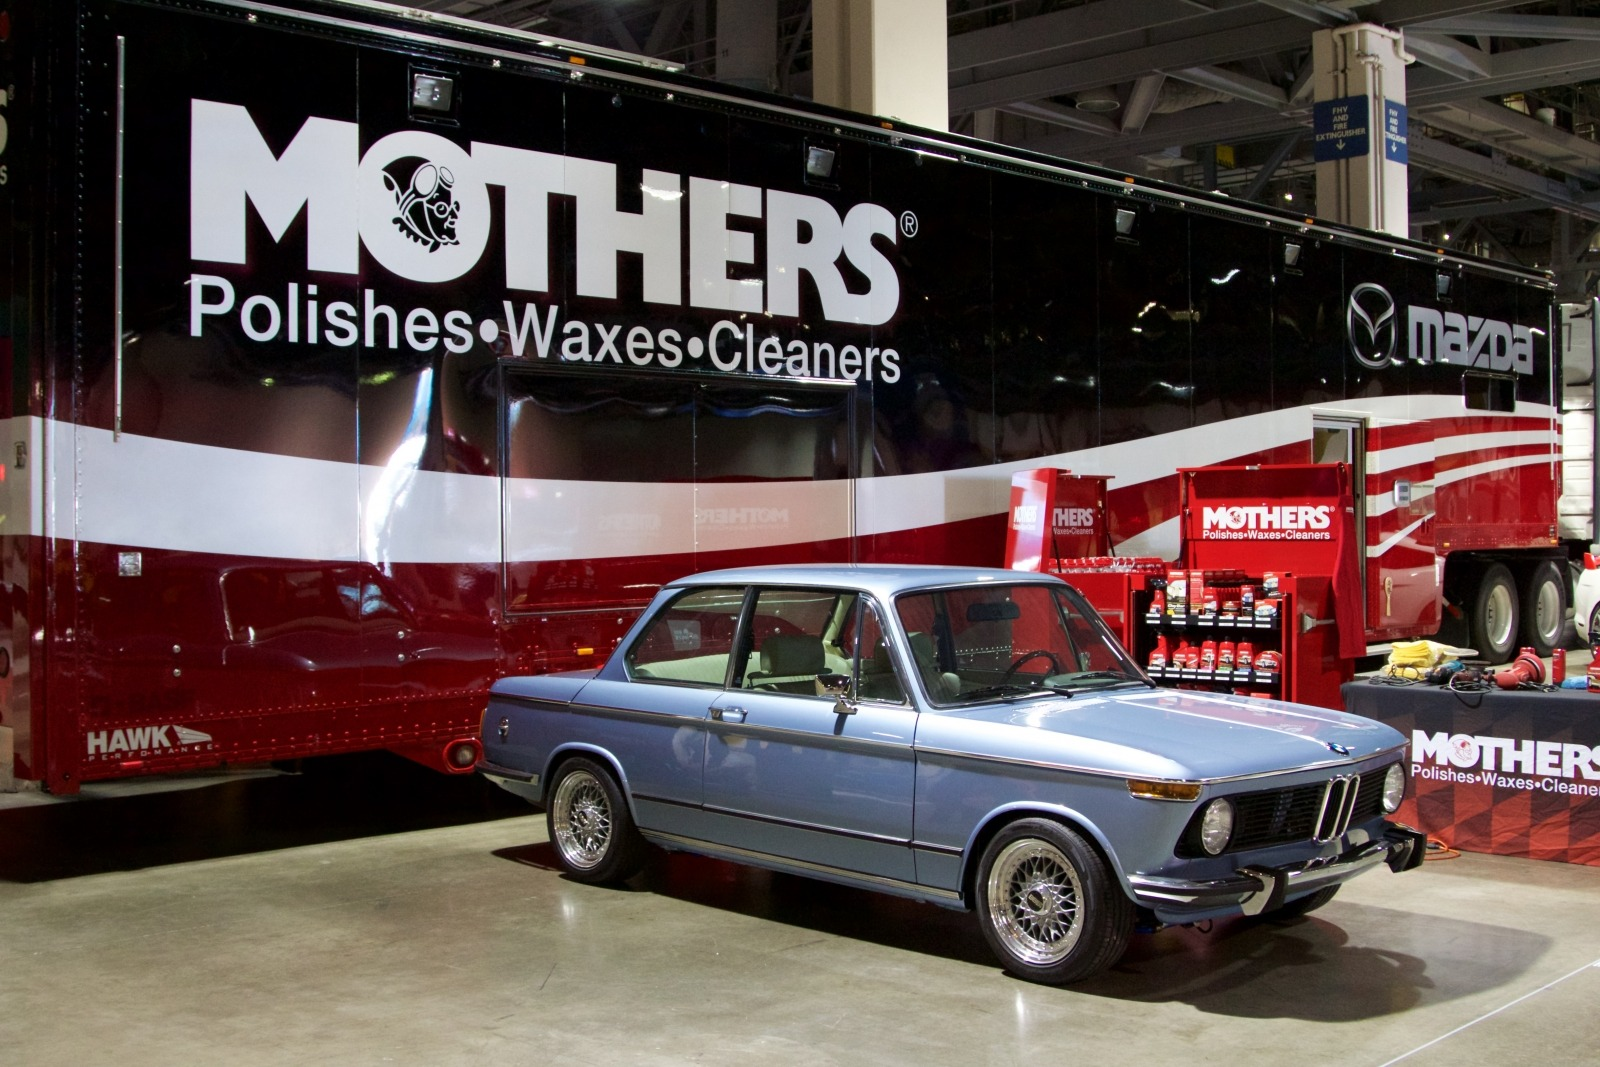 BMW 2002 Mothers Polish 3890.jpg